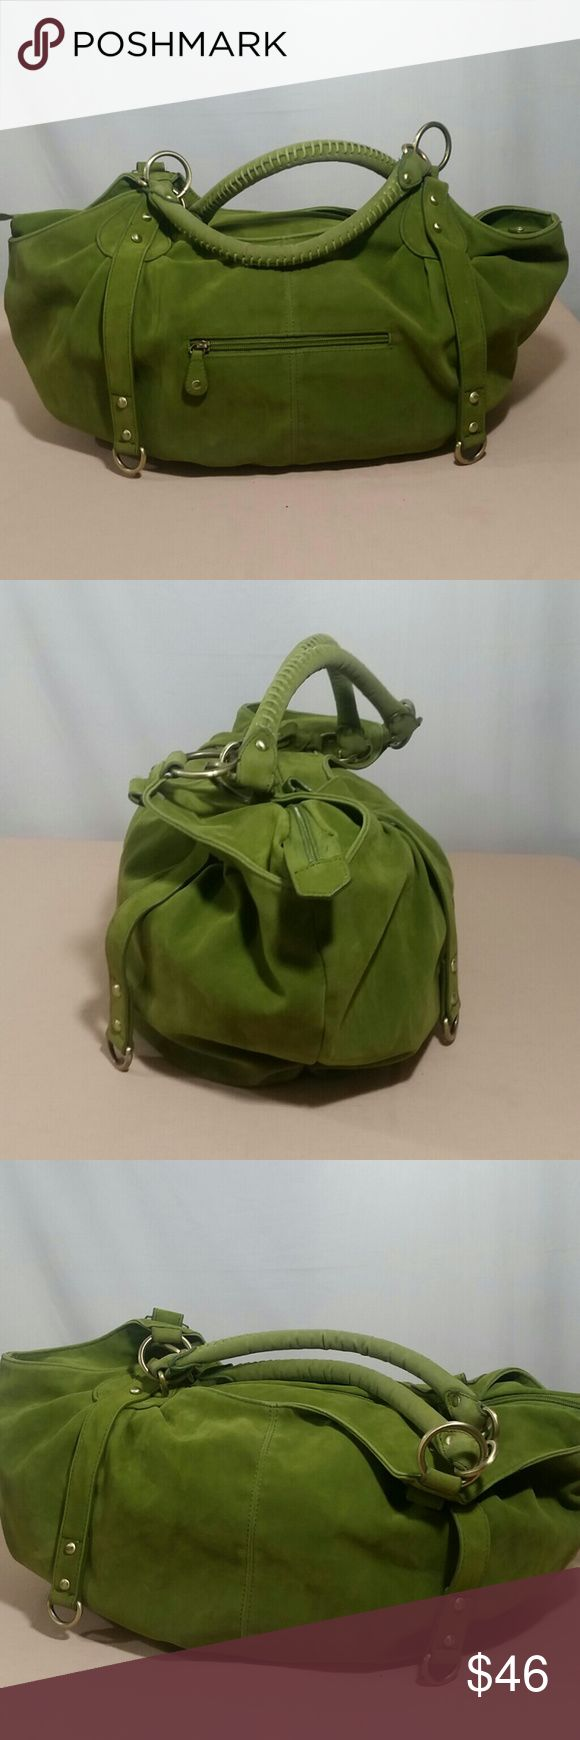 """BIG BUDDHA Green Green Shoulder Bag Beautiful BIG BUDDHA green Shoulder Bag.  This roomy bag has an apple green interior,  with a zippered pocket and two additional compartments.  This beautiful,  stylish BIG BUDDHA Shoulder Bag is in excellent condition. Measurements : Strap Drop :  11 12"""" Length :  18"""" Height :  13"""" Width :  7"""" Big Buddha Bags Shoulder Bags"""